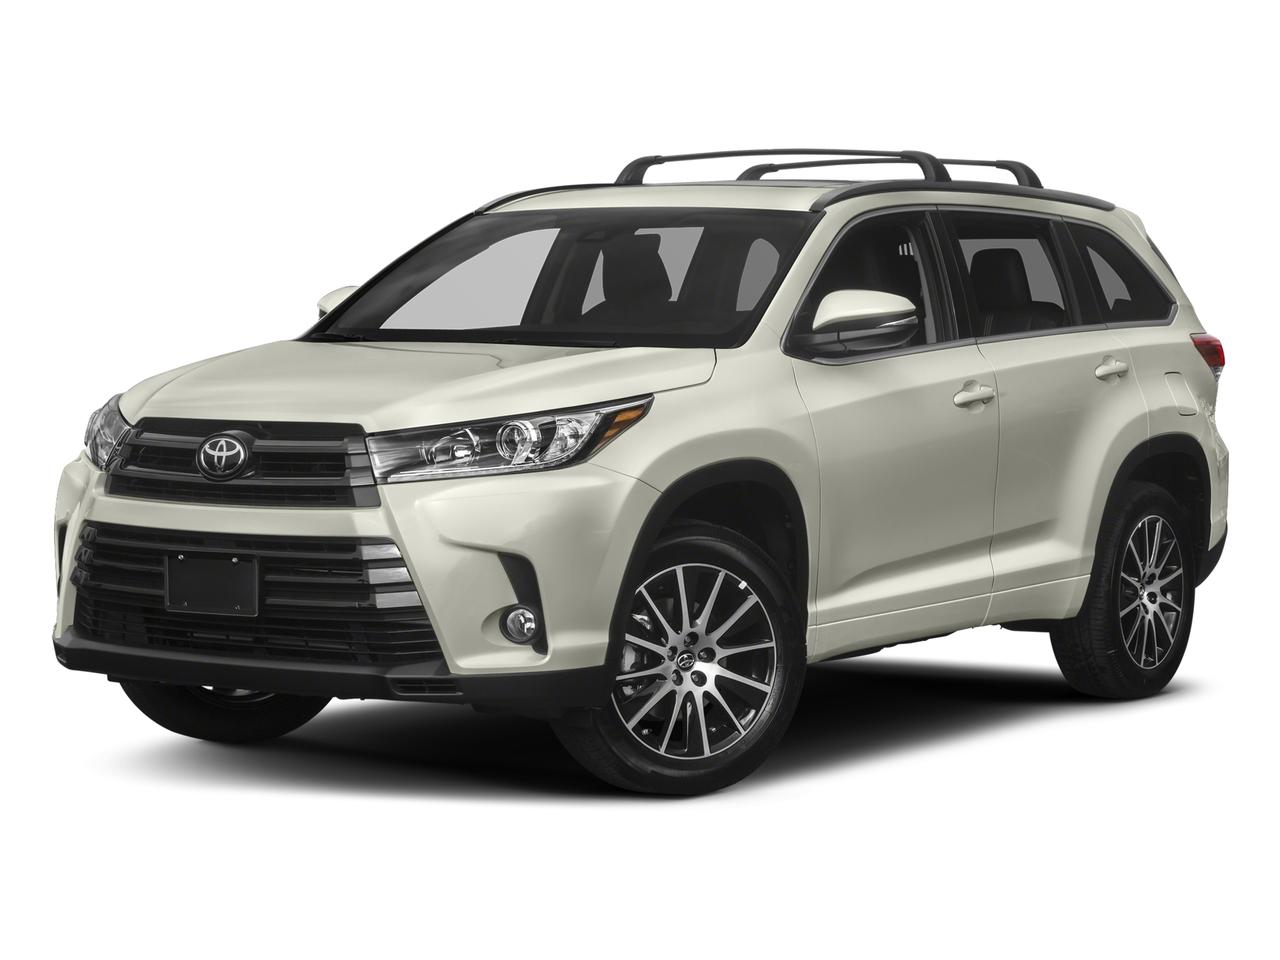 2018 Toyota Highlander Vehicle Photo in Spokane, WA 99207